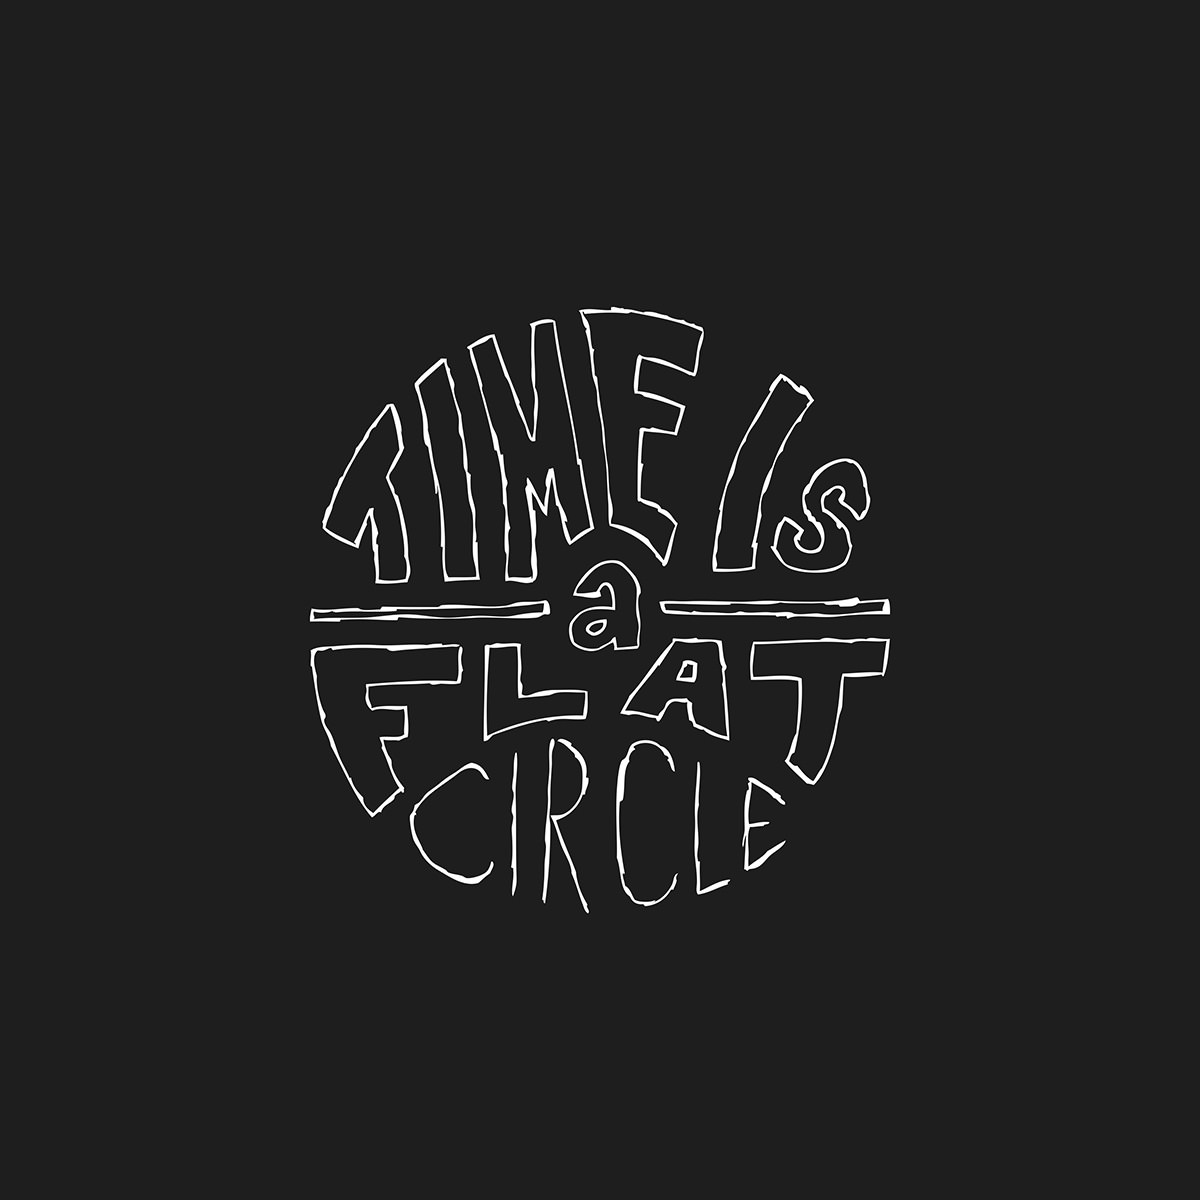 Timeisaflatcircle2